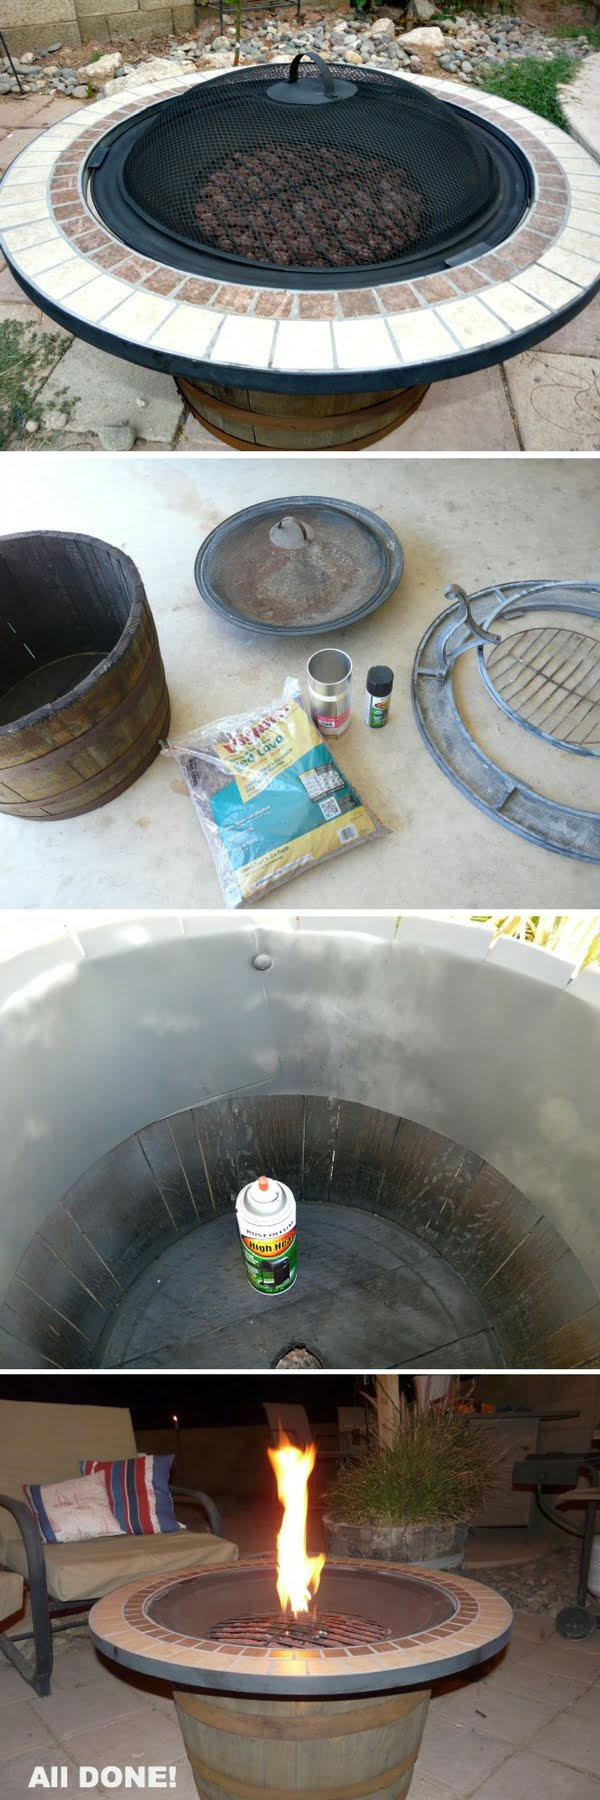 Check out the tutorial on how to make a DIY whisky barrel fire pit